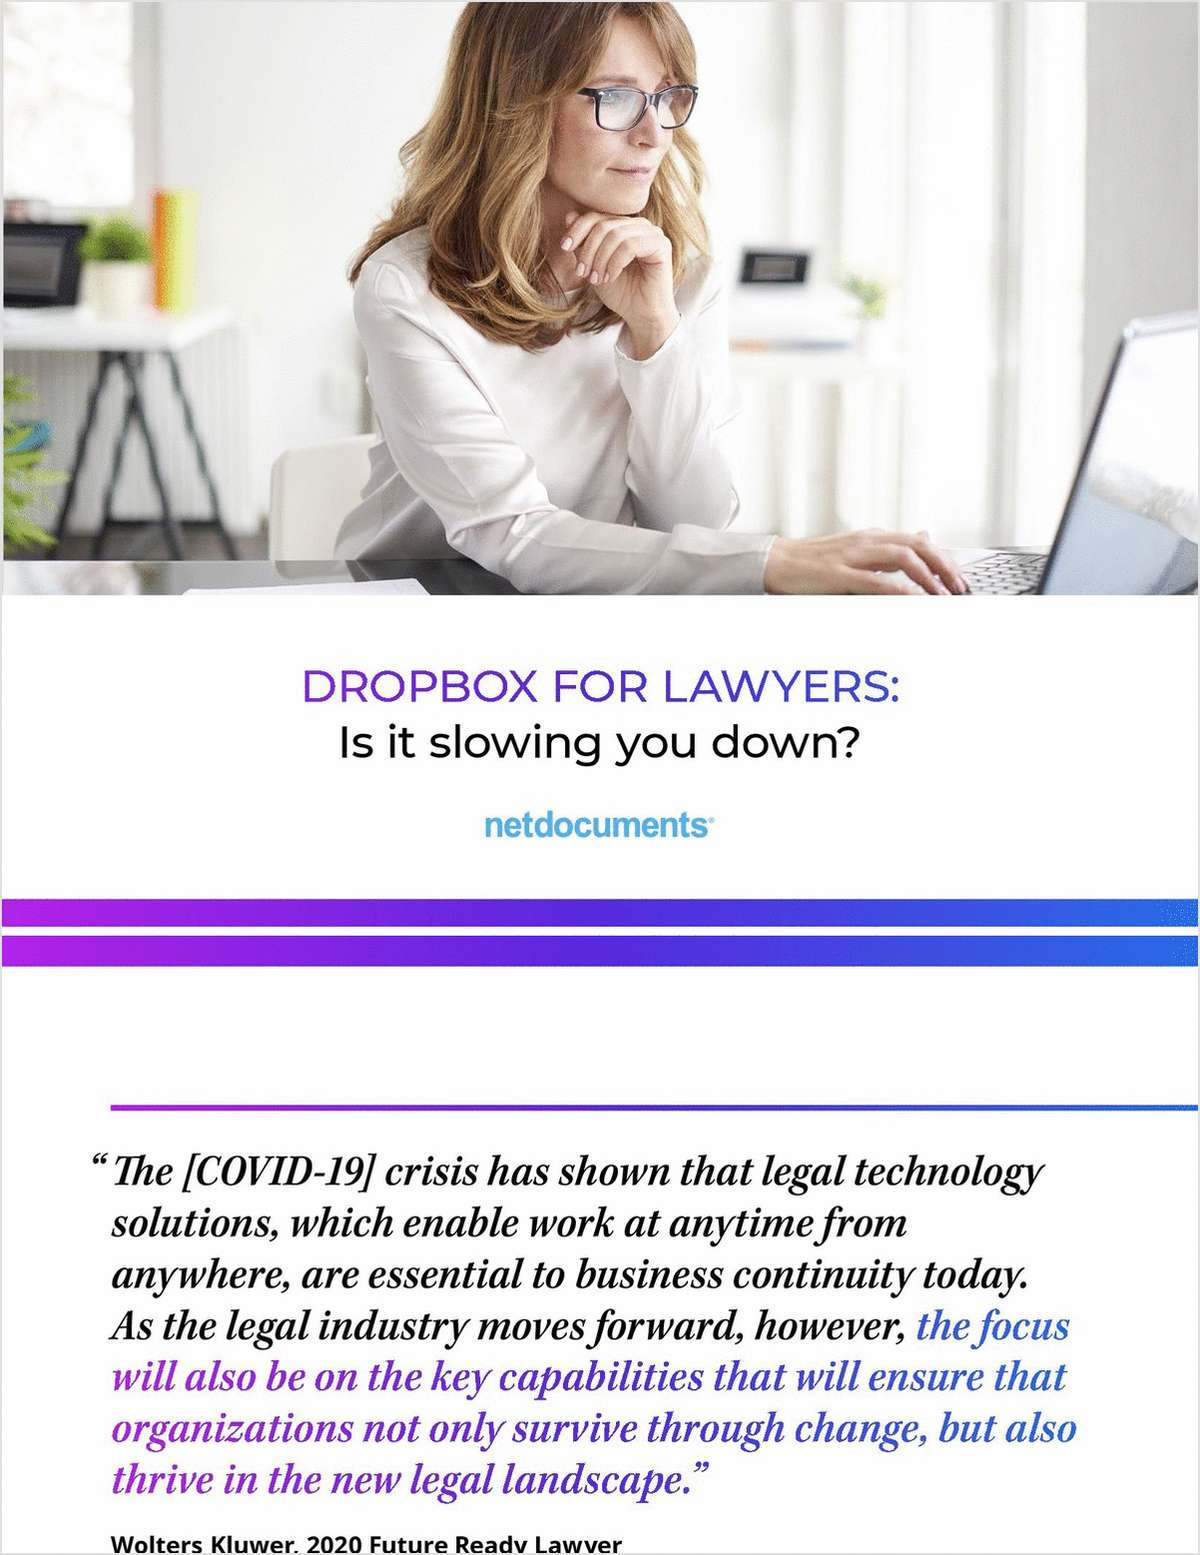 Dropbox for Lawyers: Is It Slowing You Down?